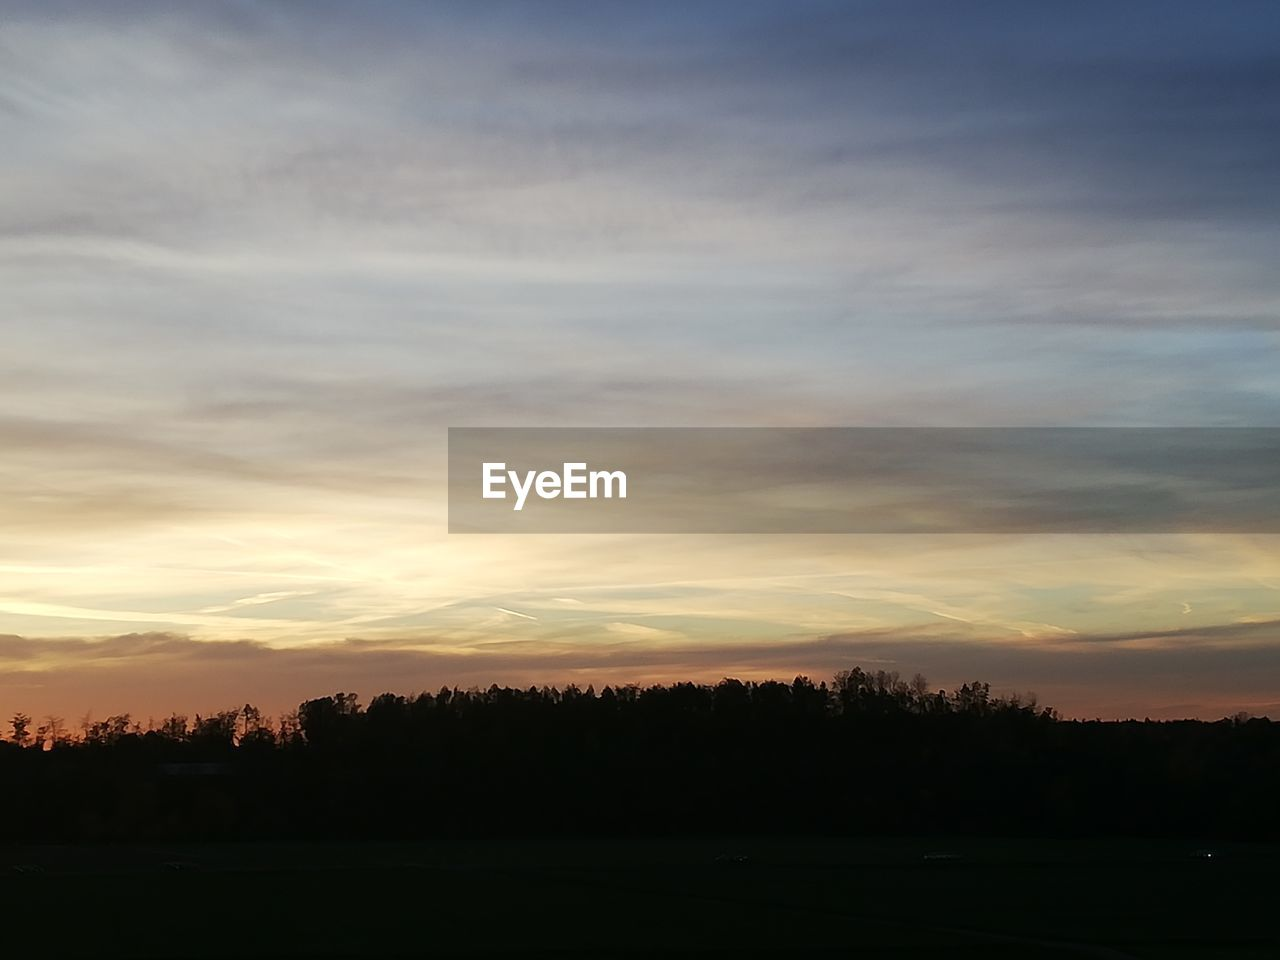 sunset, sky, cloud - sky, beauty in nature, tranquility, silhouette, scenics - nature, tranquil scene, tree, environment, landscape, no people, plant, orange color, non-urban scene, nature, idyllic, outdoors, field, land